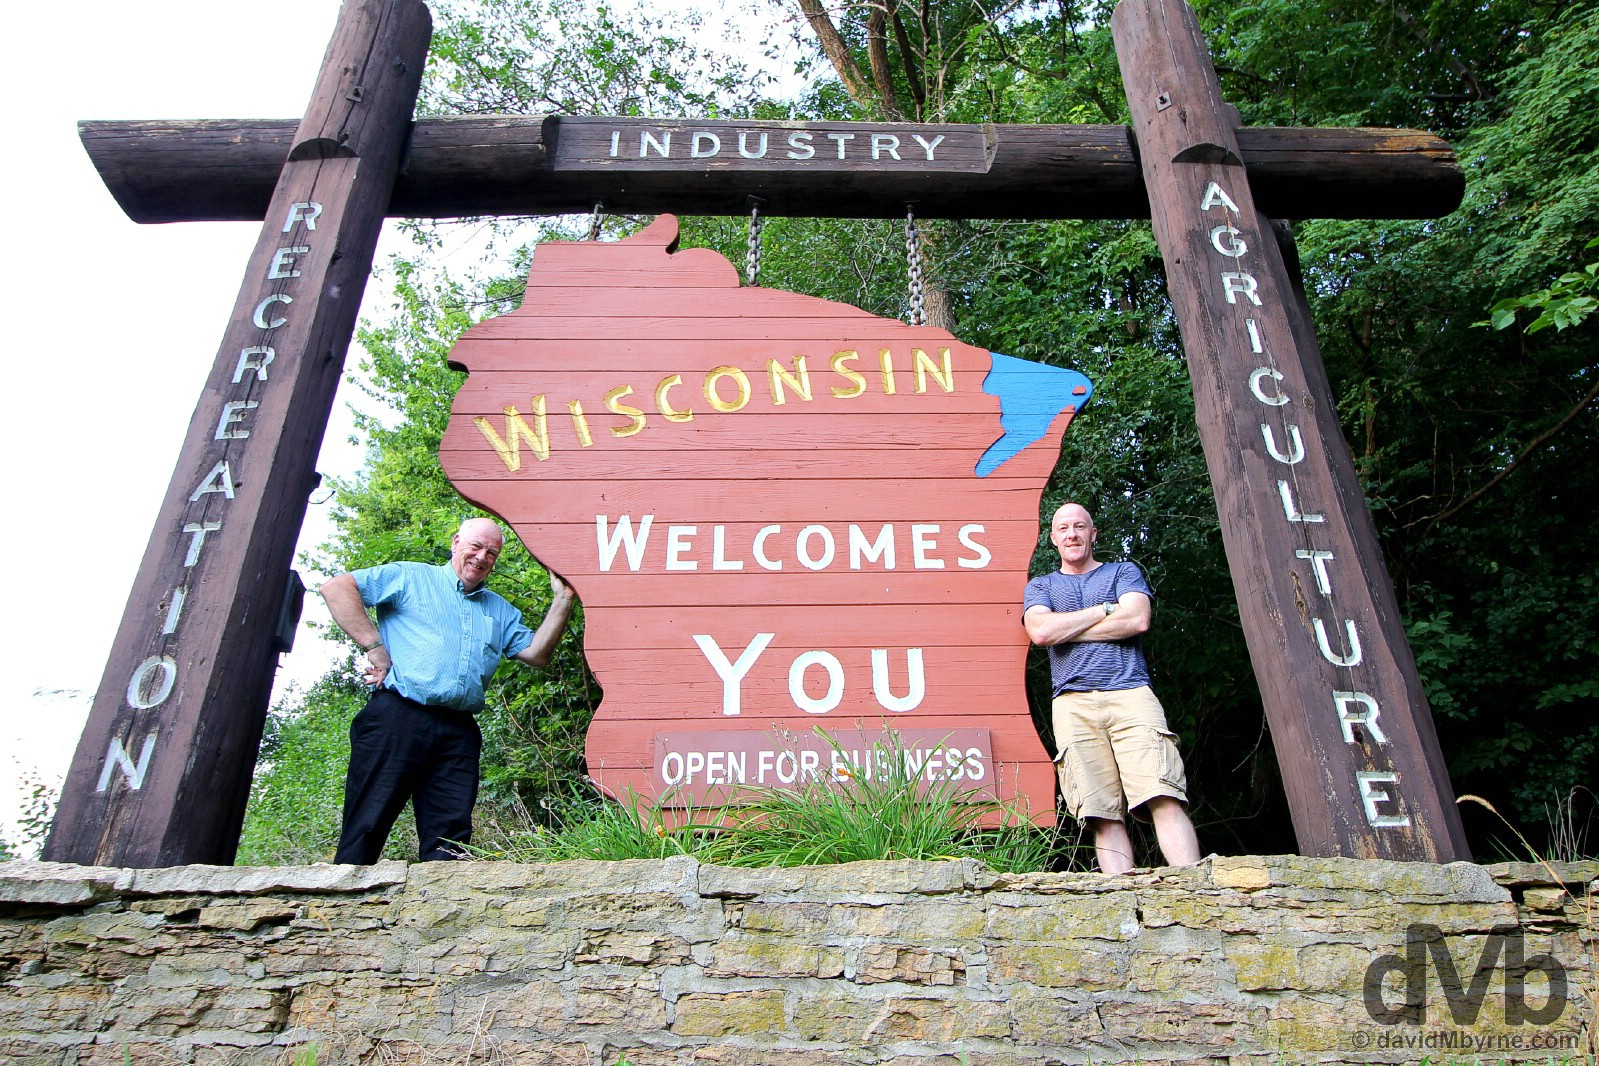 Wisconsin welcomes you. Prescot, Wisconsin, USA. August 29, 2016.